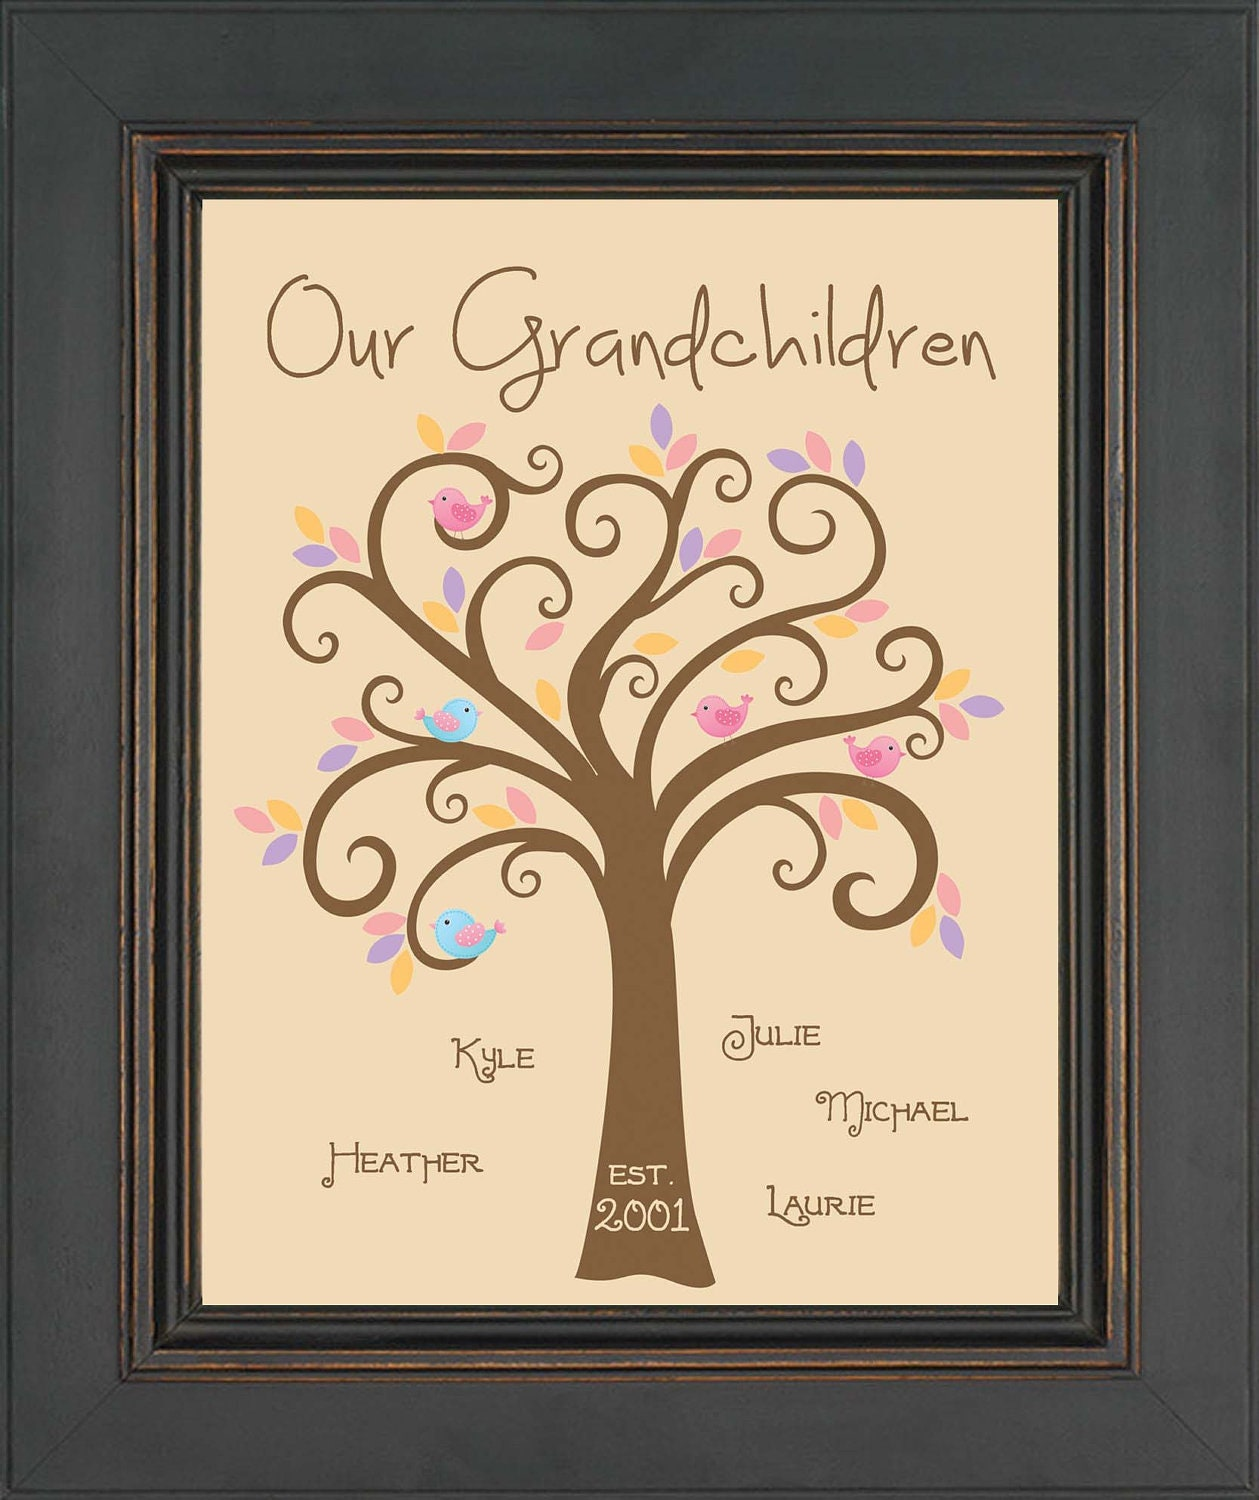 Grandparents Gift Family Tree With Grandkids Birds And